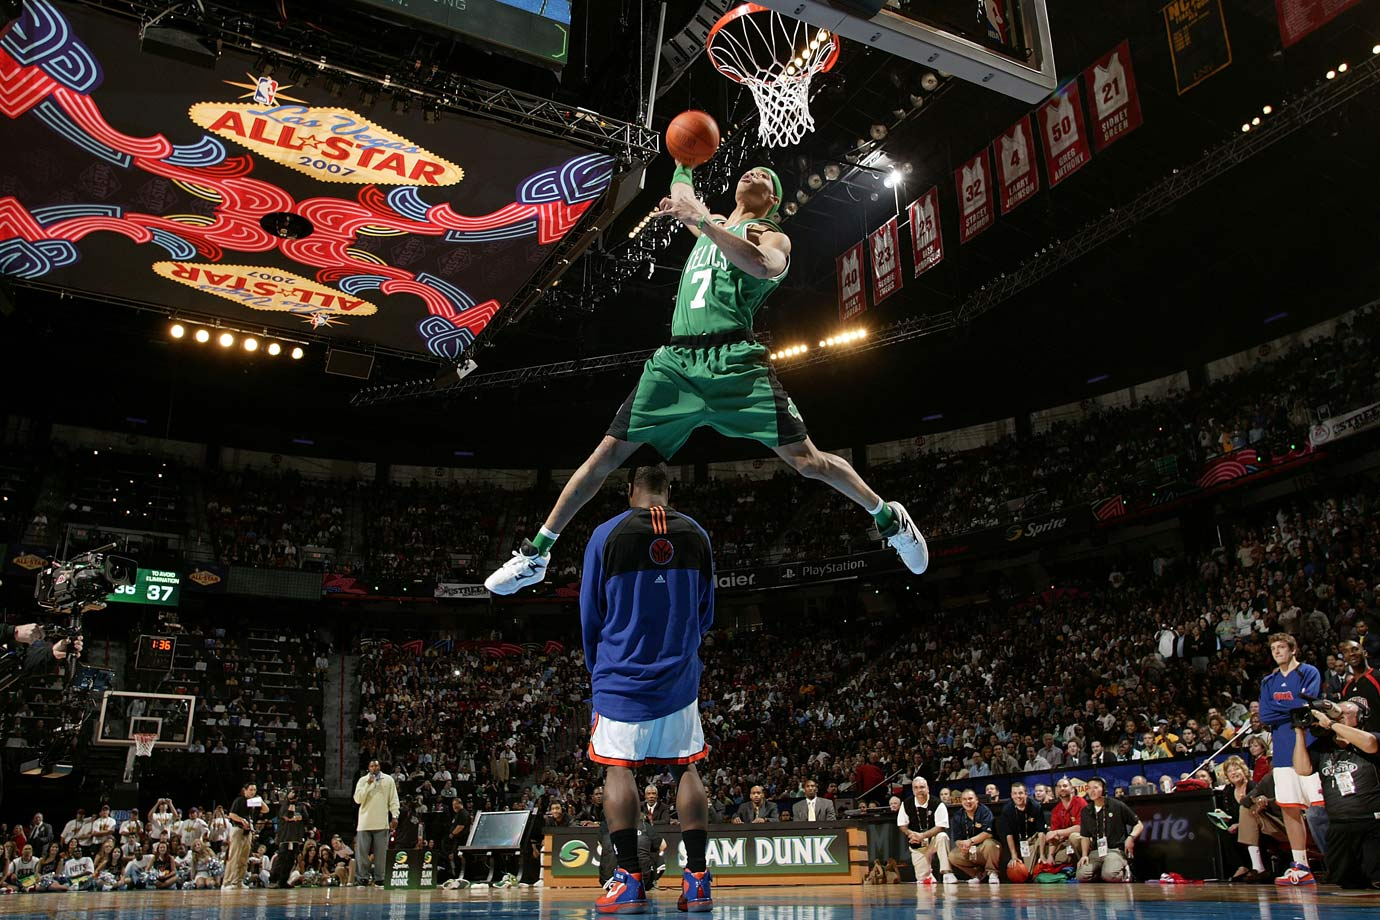 b2cb19075 The Boston swingman paid homage to 1991 champion Dee Brown by shielding his  eyes during one